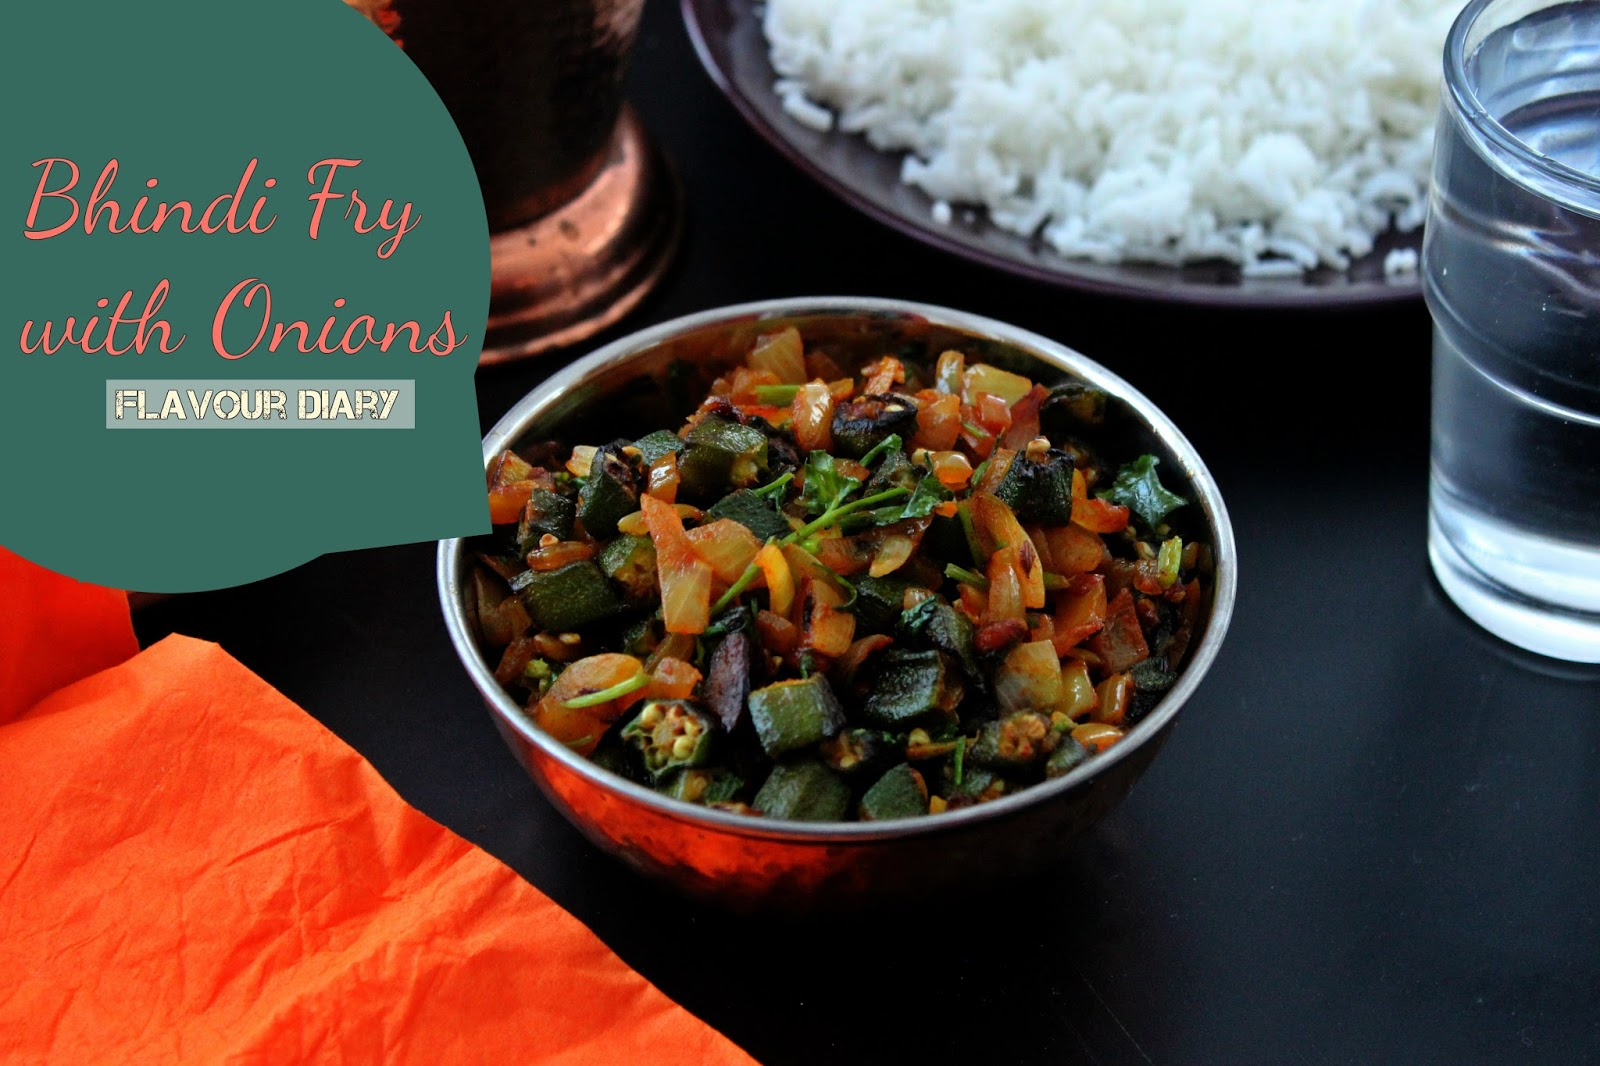 Okra/Bhindi/Ladys Finger Fry with Onions Recipe